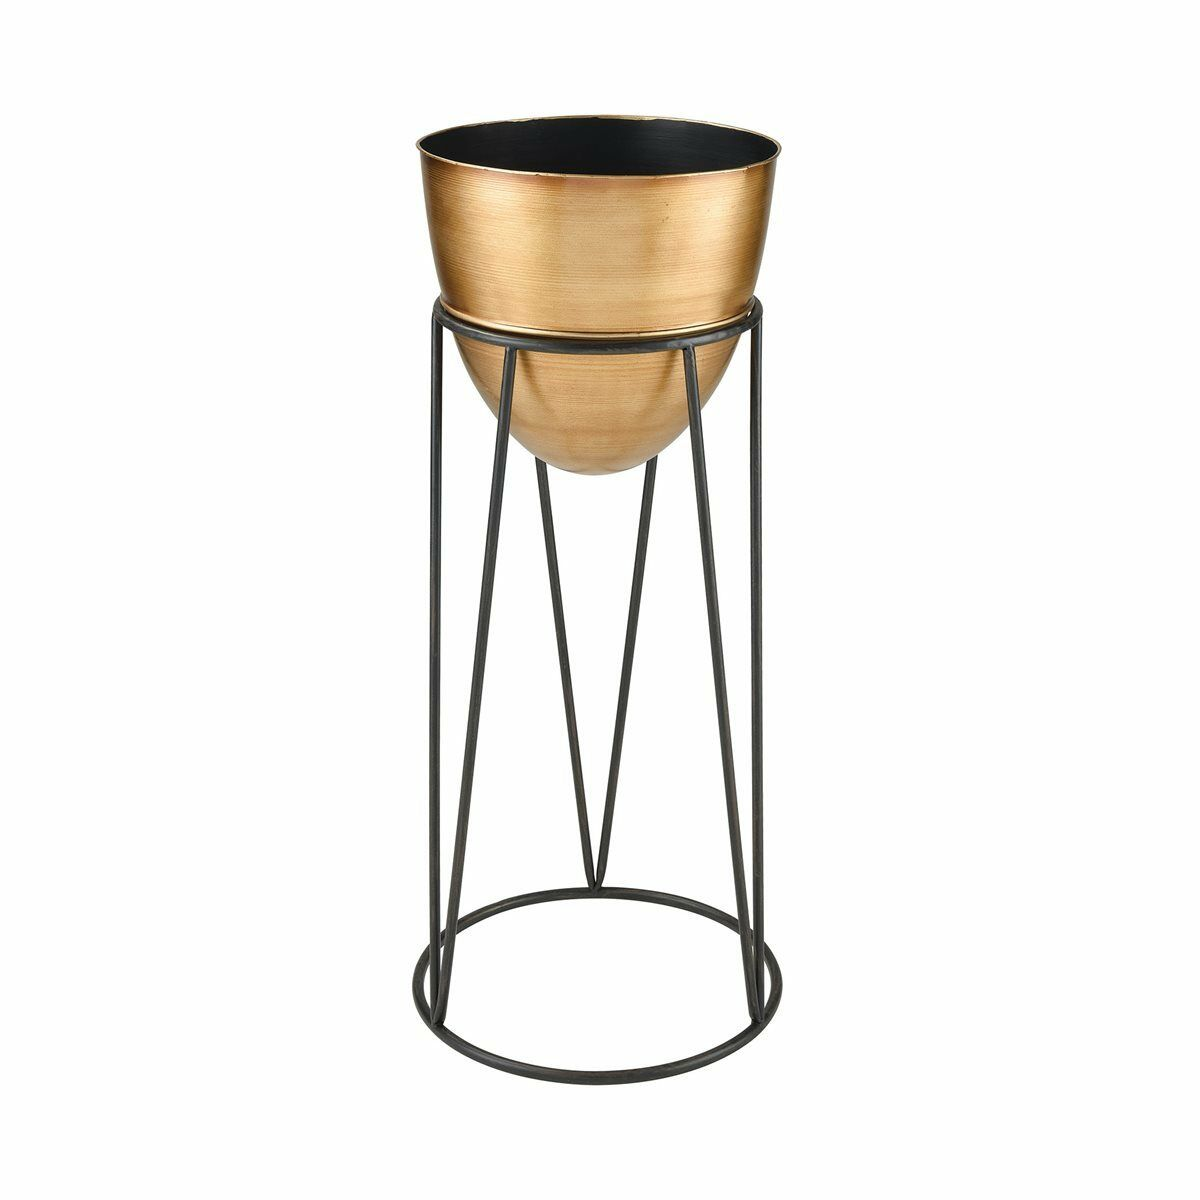 NEW LARGE  METAL TRANSITIONAL schwarz Gold BOWL PLANTER POT STAND Vase ART DECOR